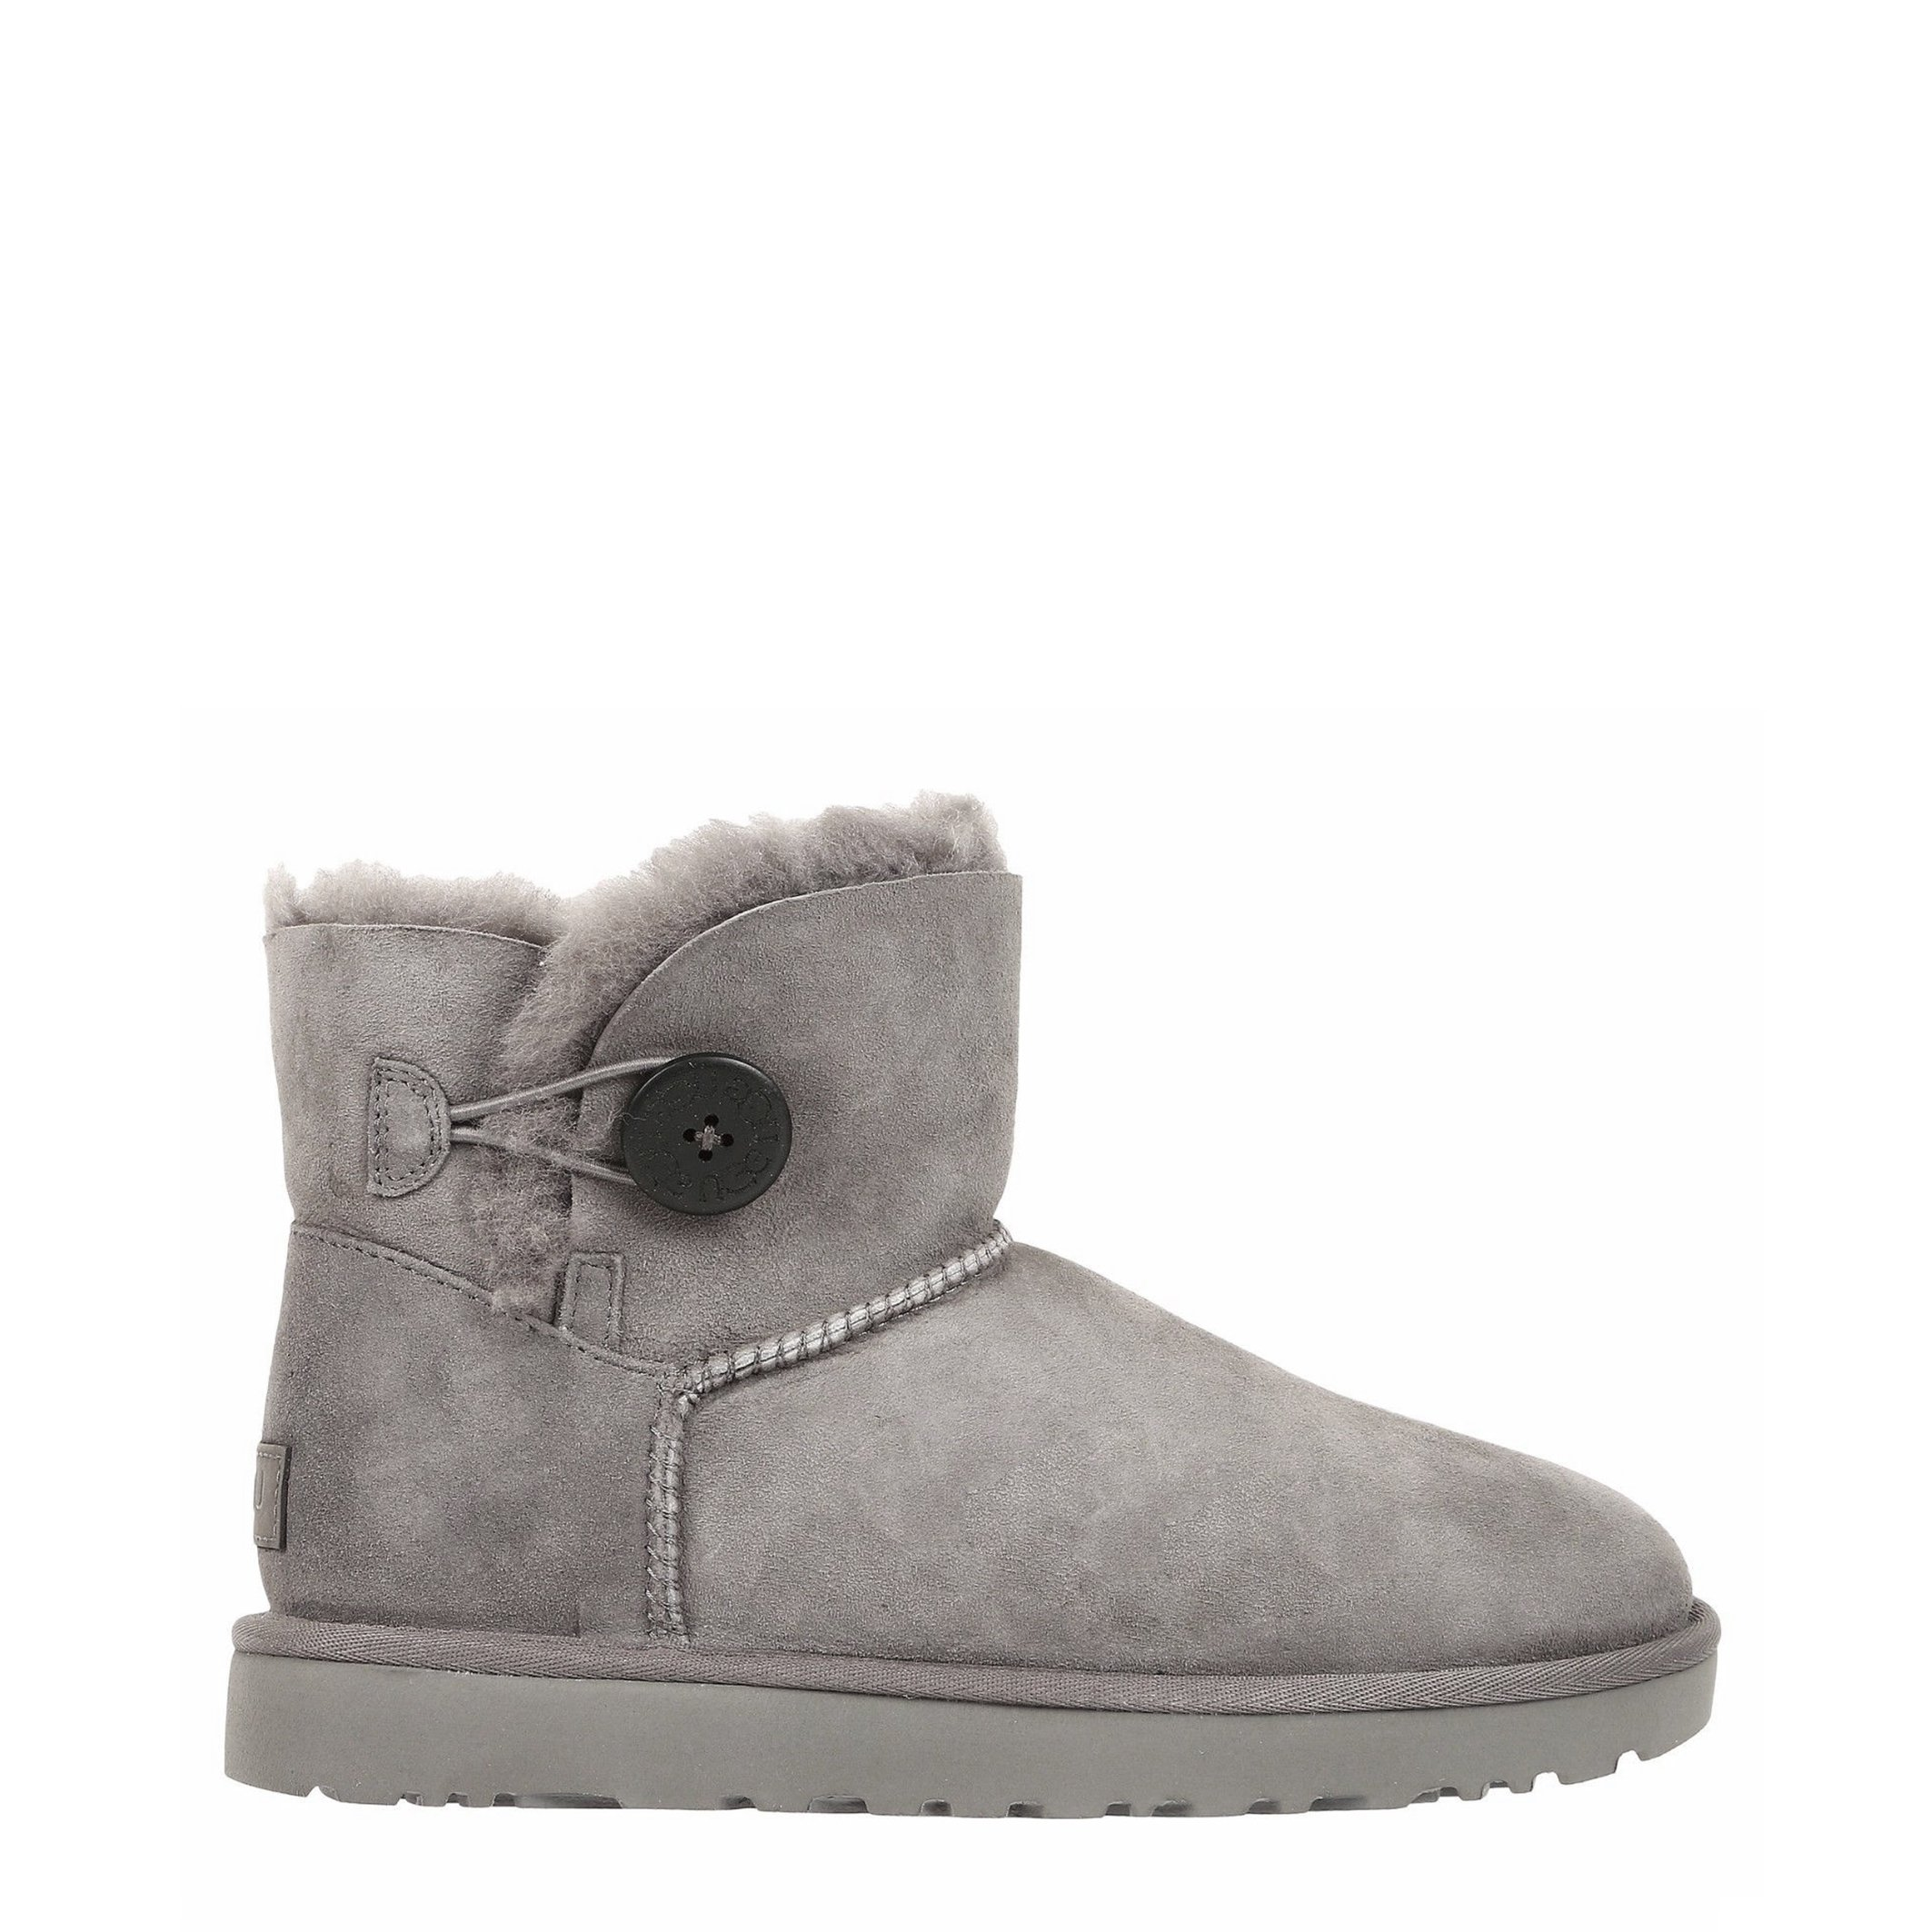 UGG Women's Ankle Boot Various Colours 1016422 - grey EU 36